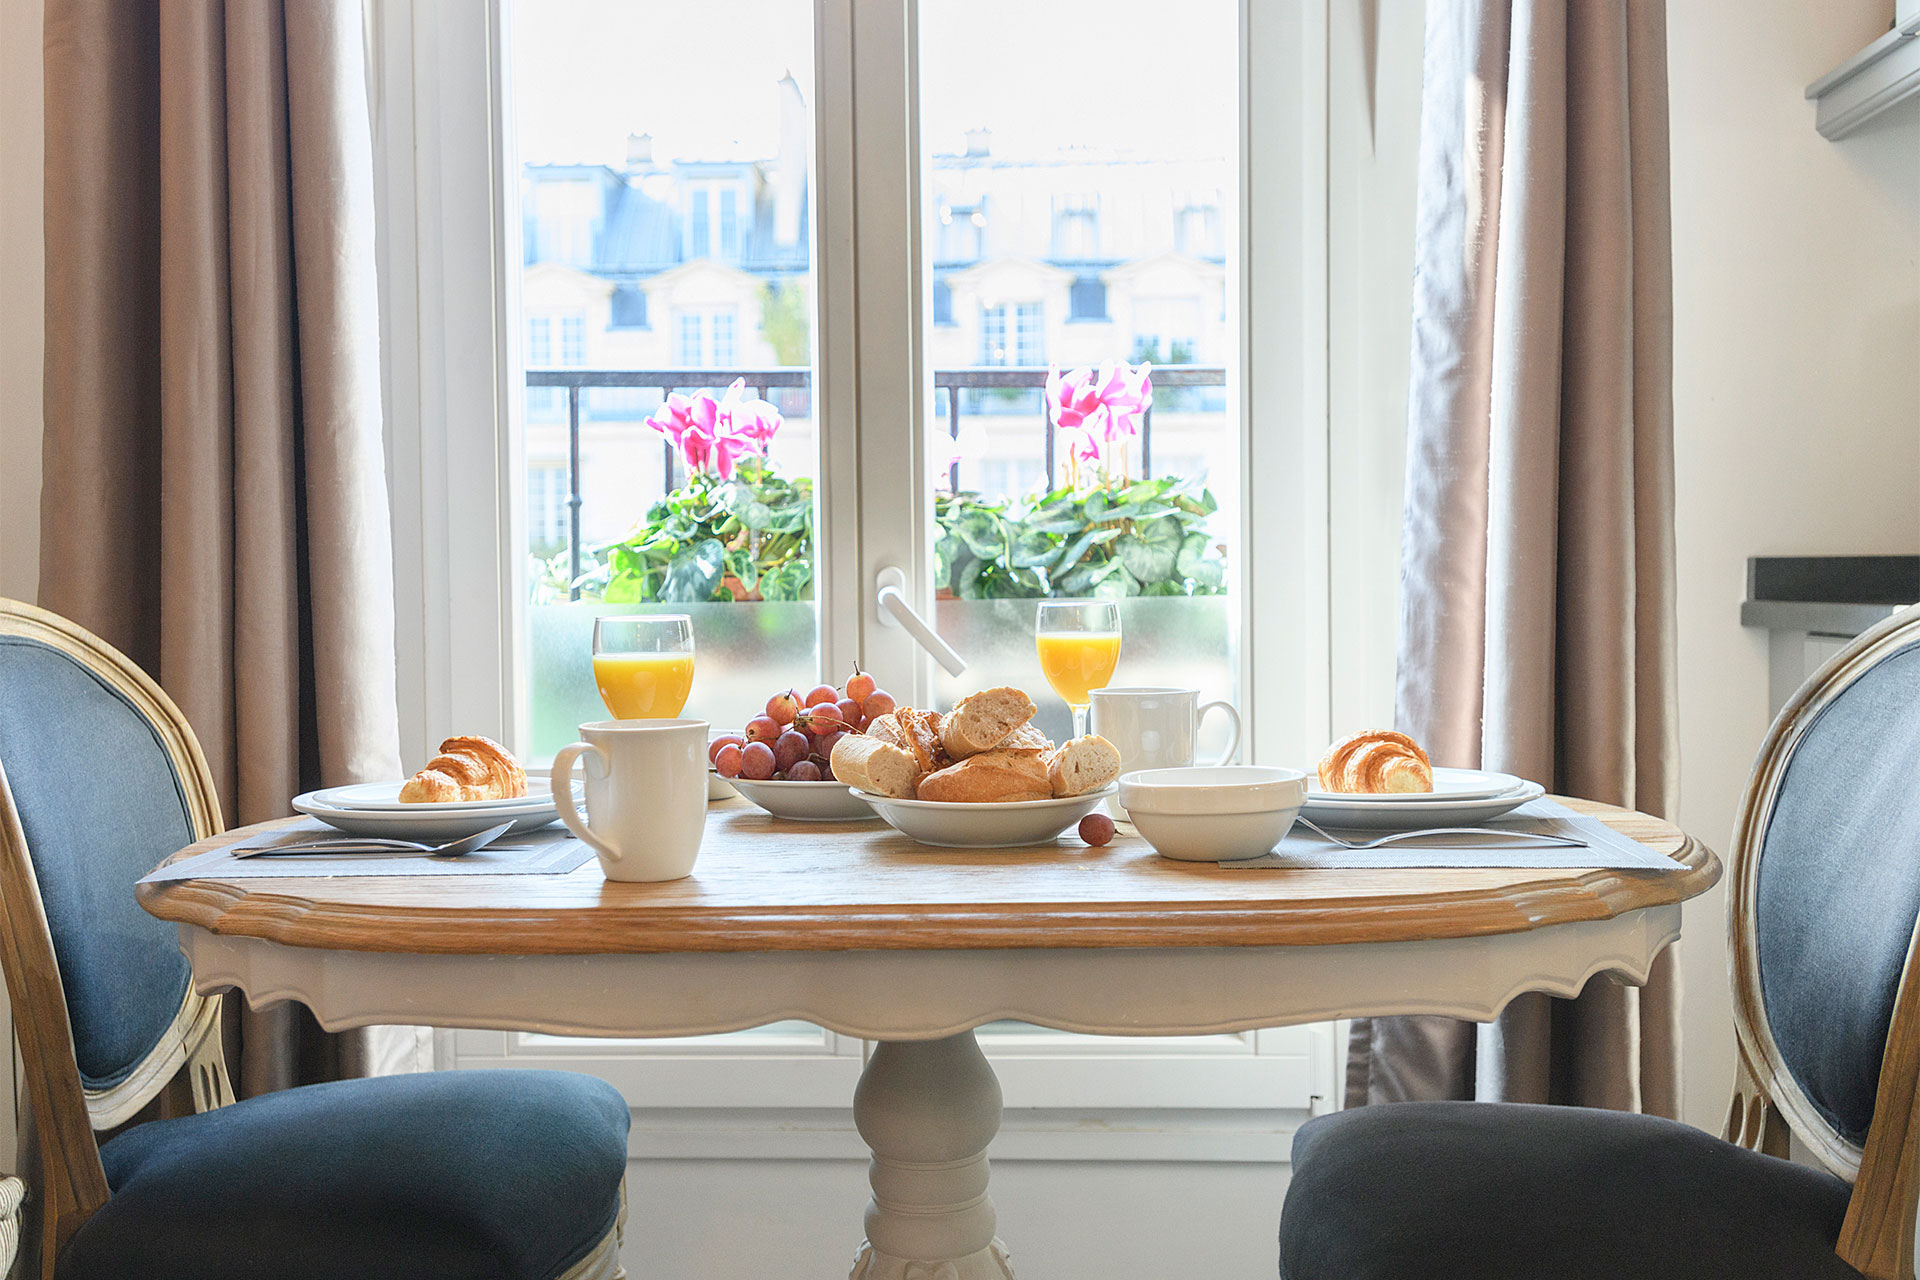 Enjoy a cozy breakfast at home in the Cremant Paris Perfect rental